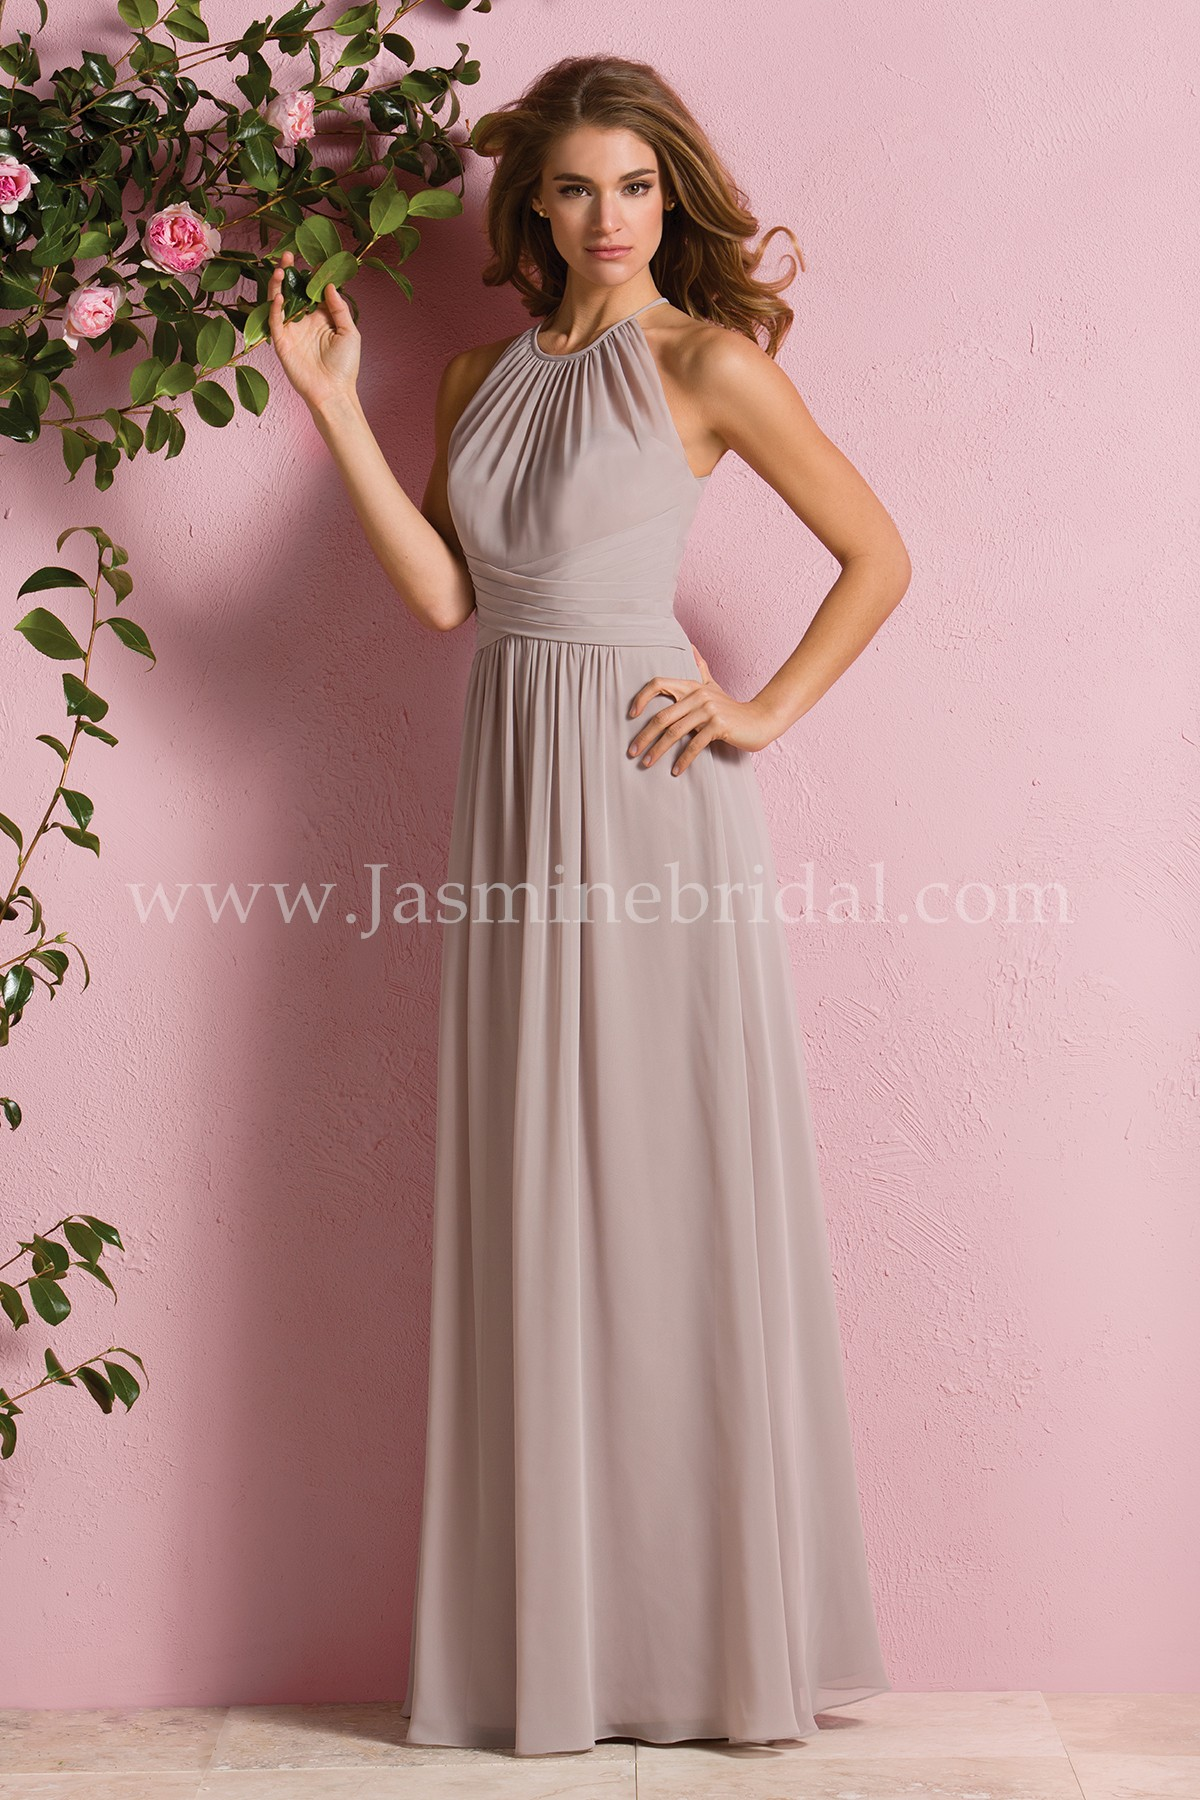 359fbfab14fd B173057 Long High Halter Neckline Poly Chiffon Bridesmaid Dress